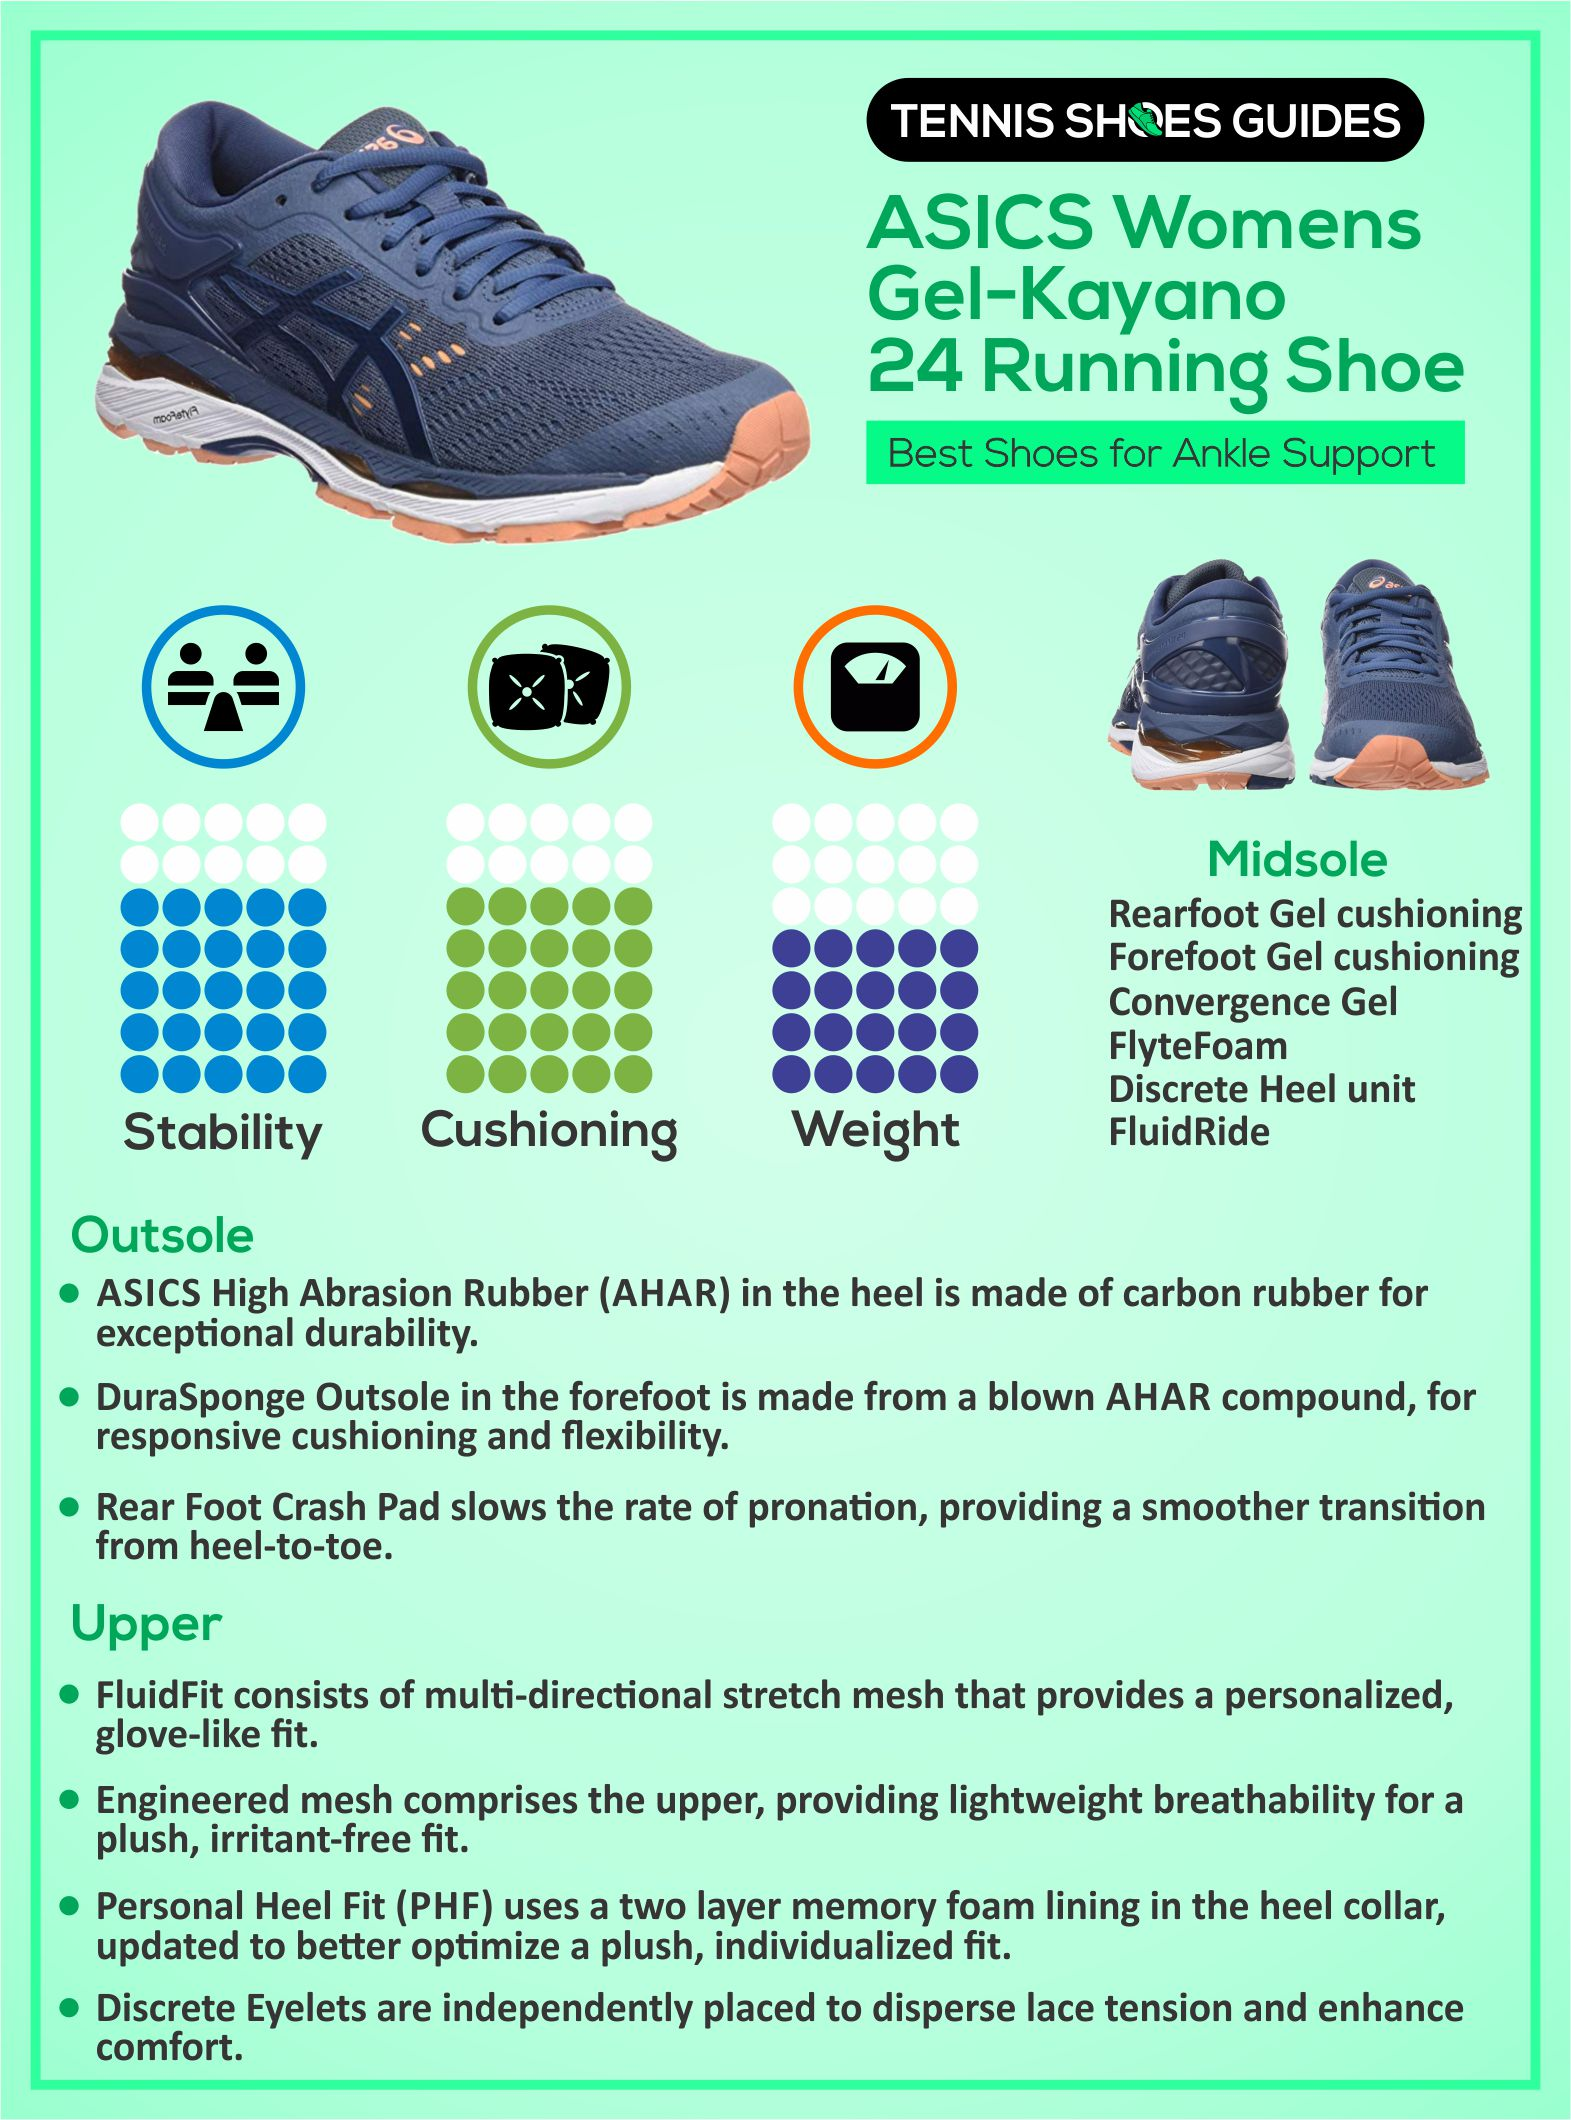 Best tennis shoe for ankle support infographic details